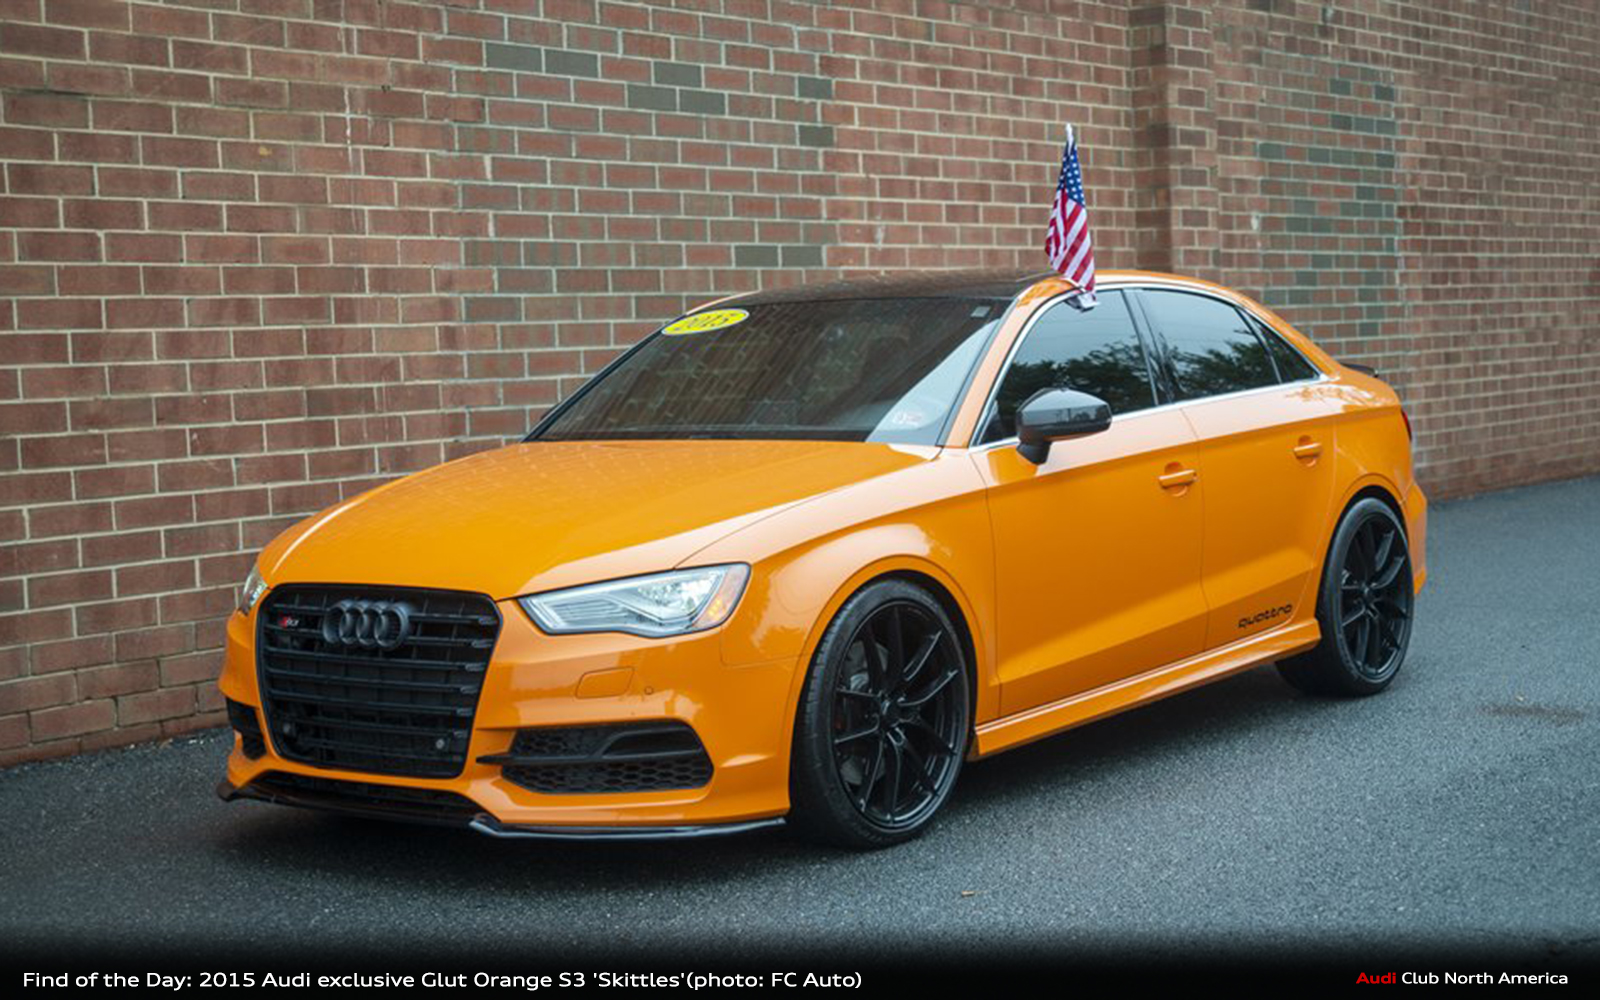 Find of the Day: 2015 Audi exclusive Glut Orange S3 Prestige 'Skittles'